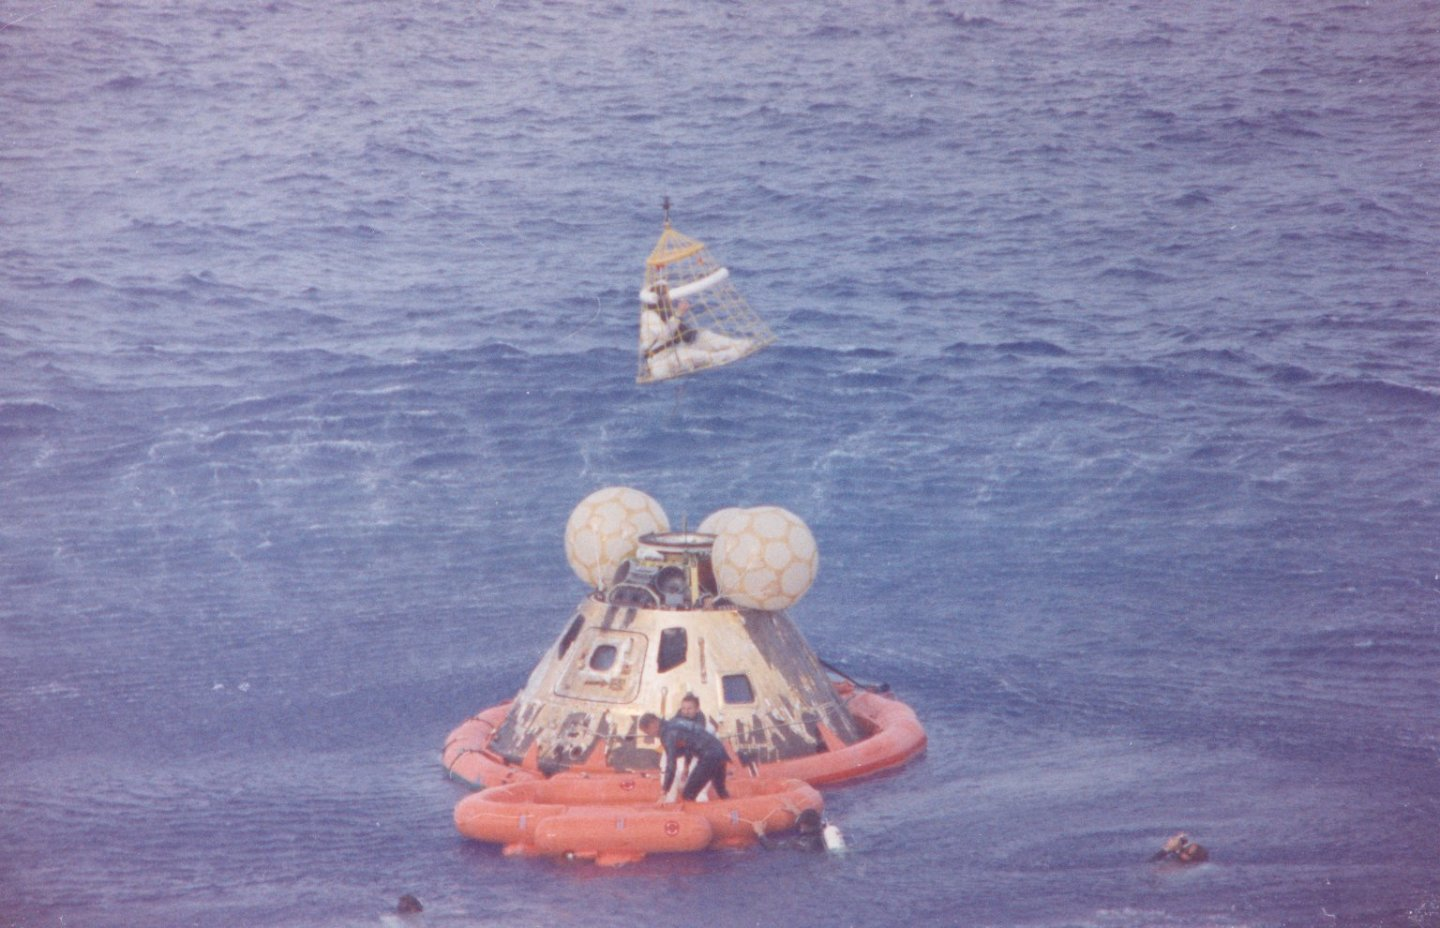 Apollo 13 being recovered after splashdown